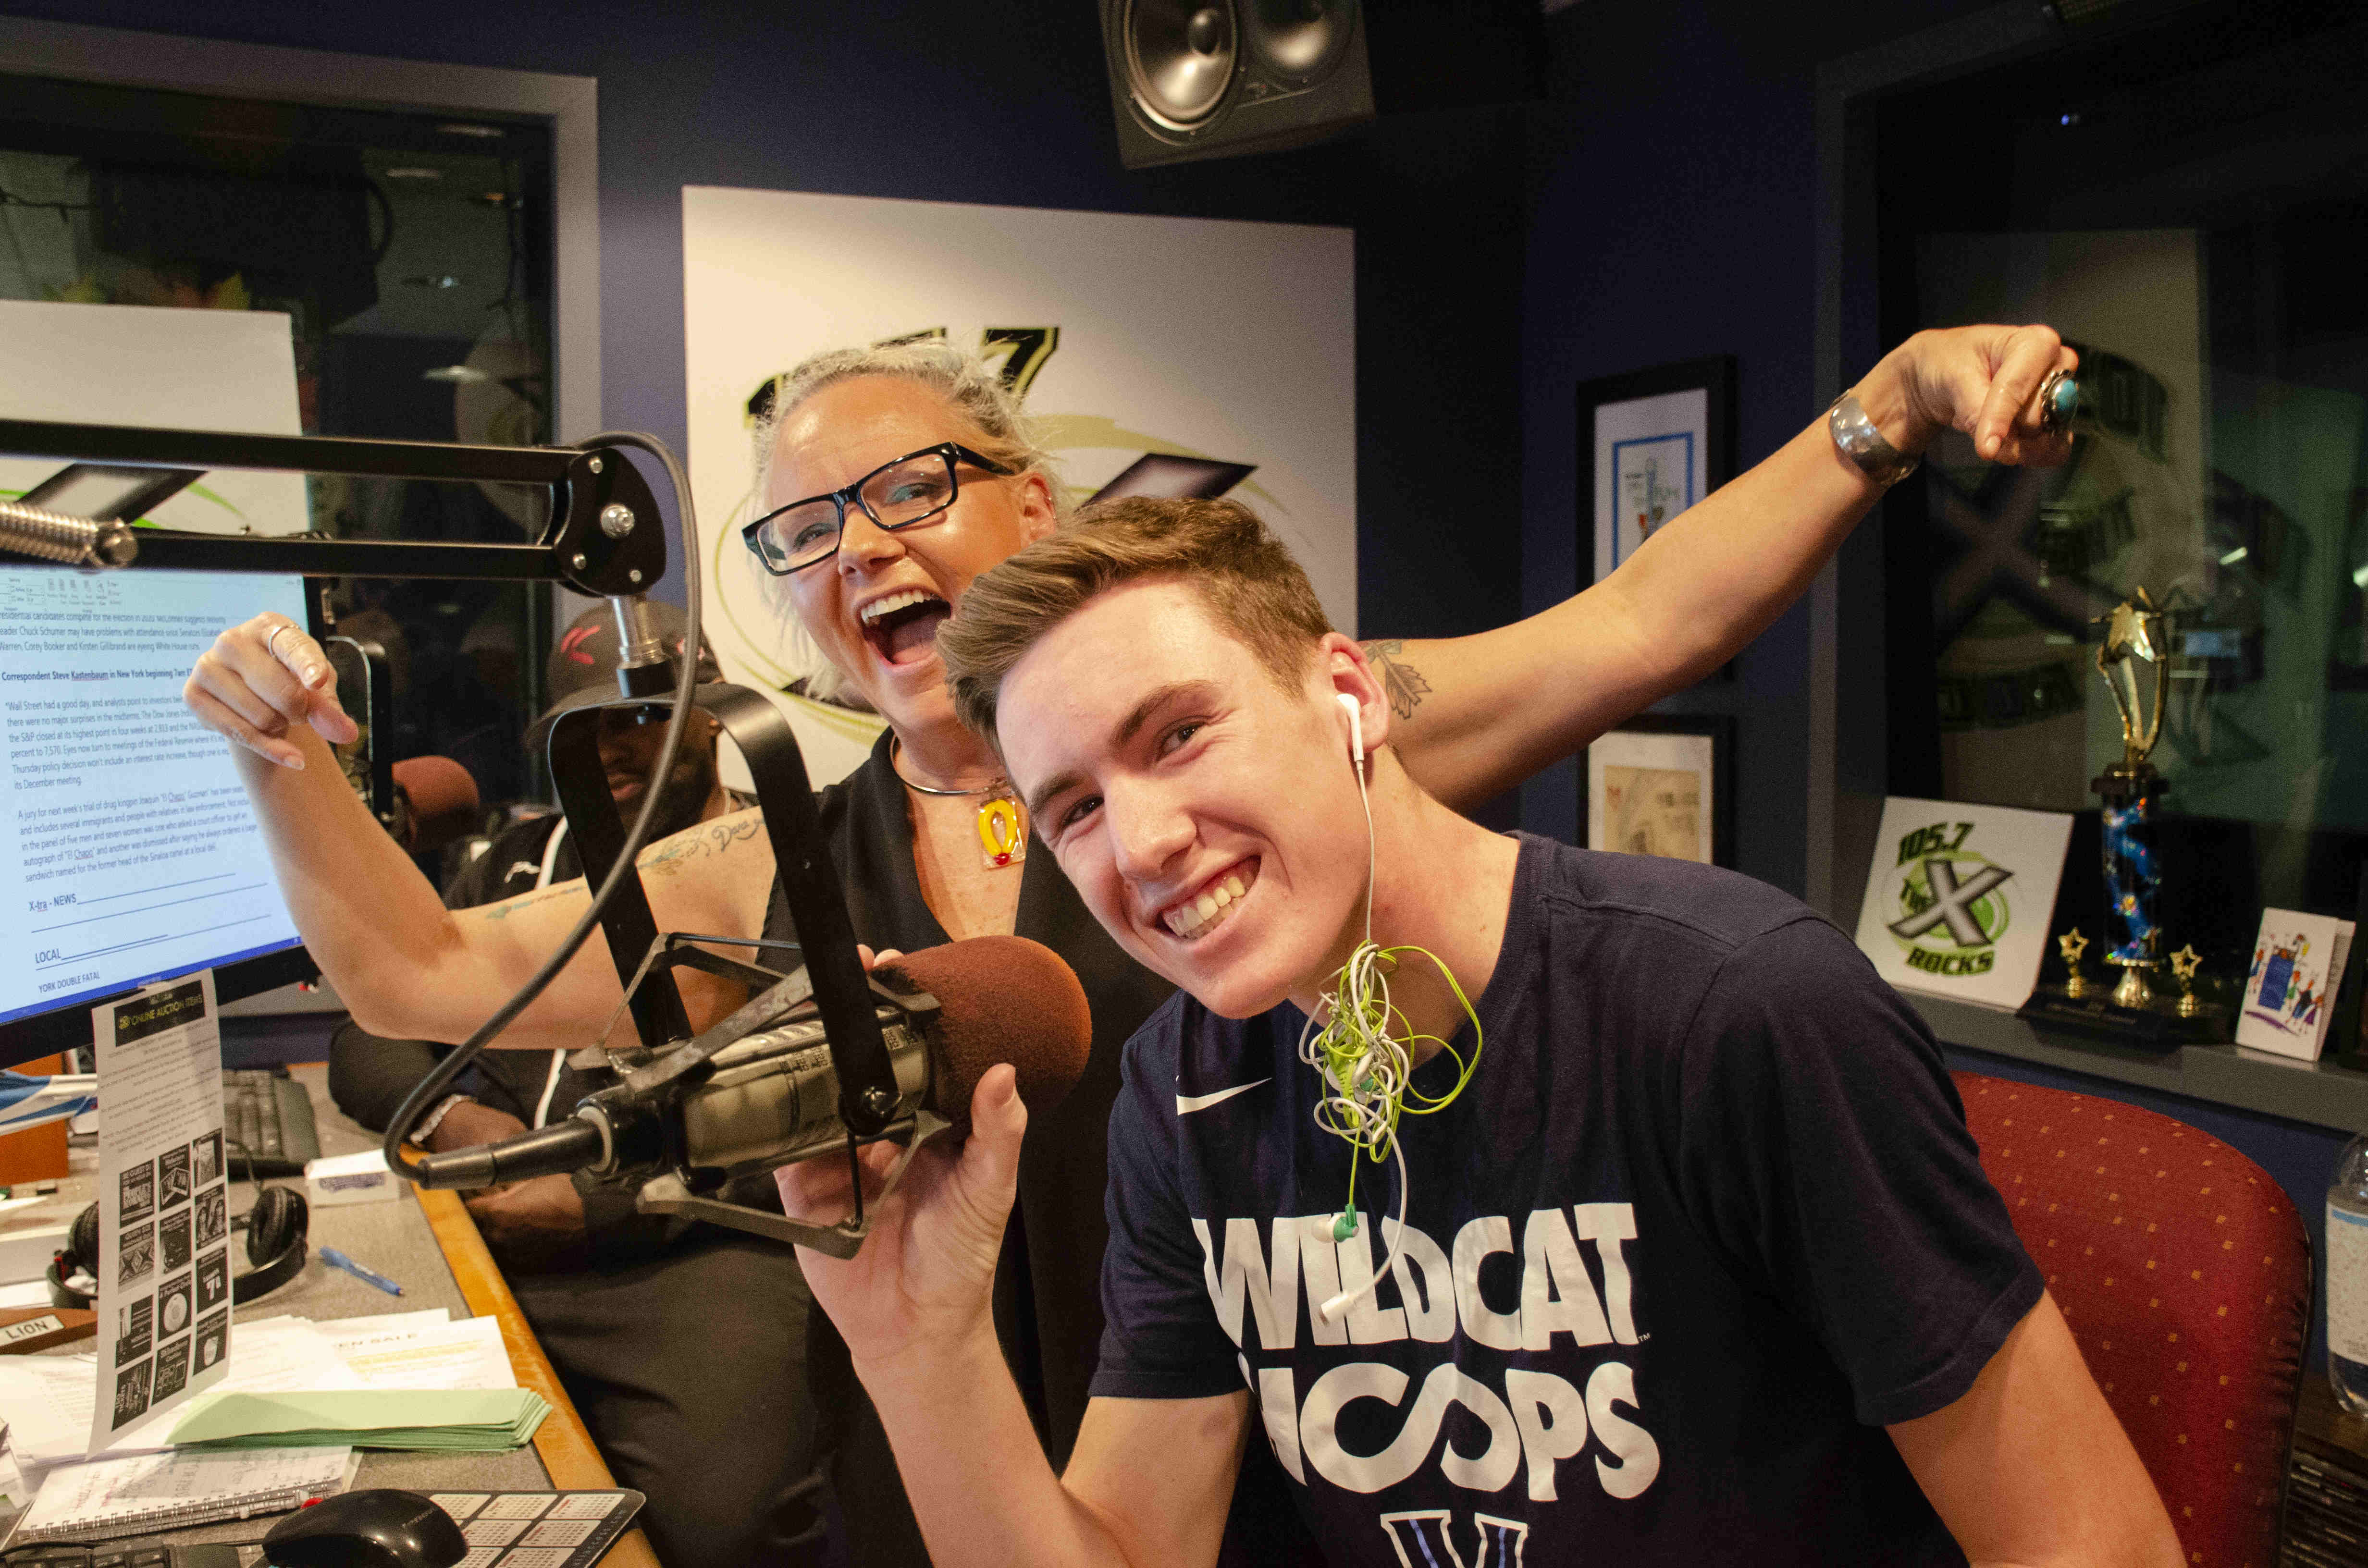 A teenage boy sits at a microphone in a radio studio, smiling. A woman stands behind him with arms outstretched, also smiling.